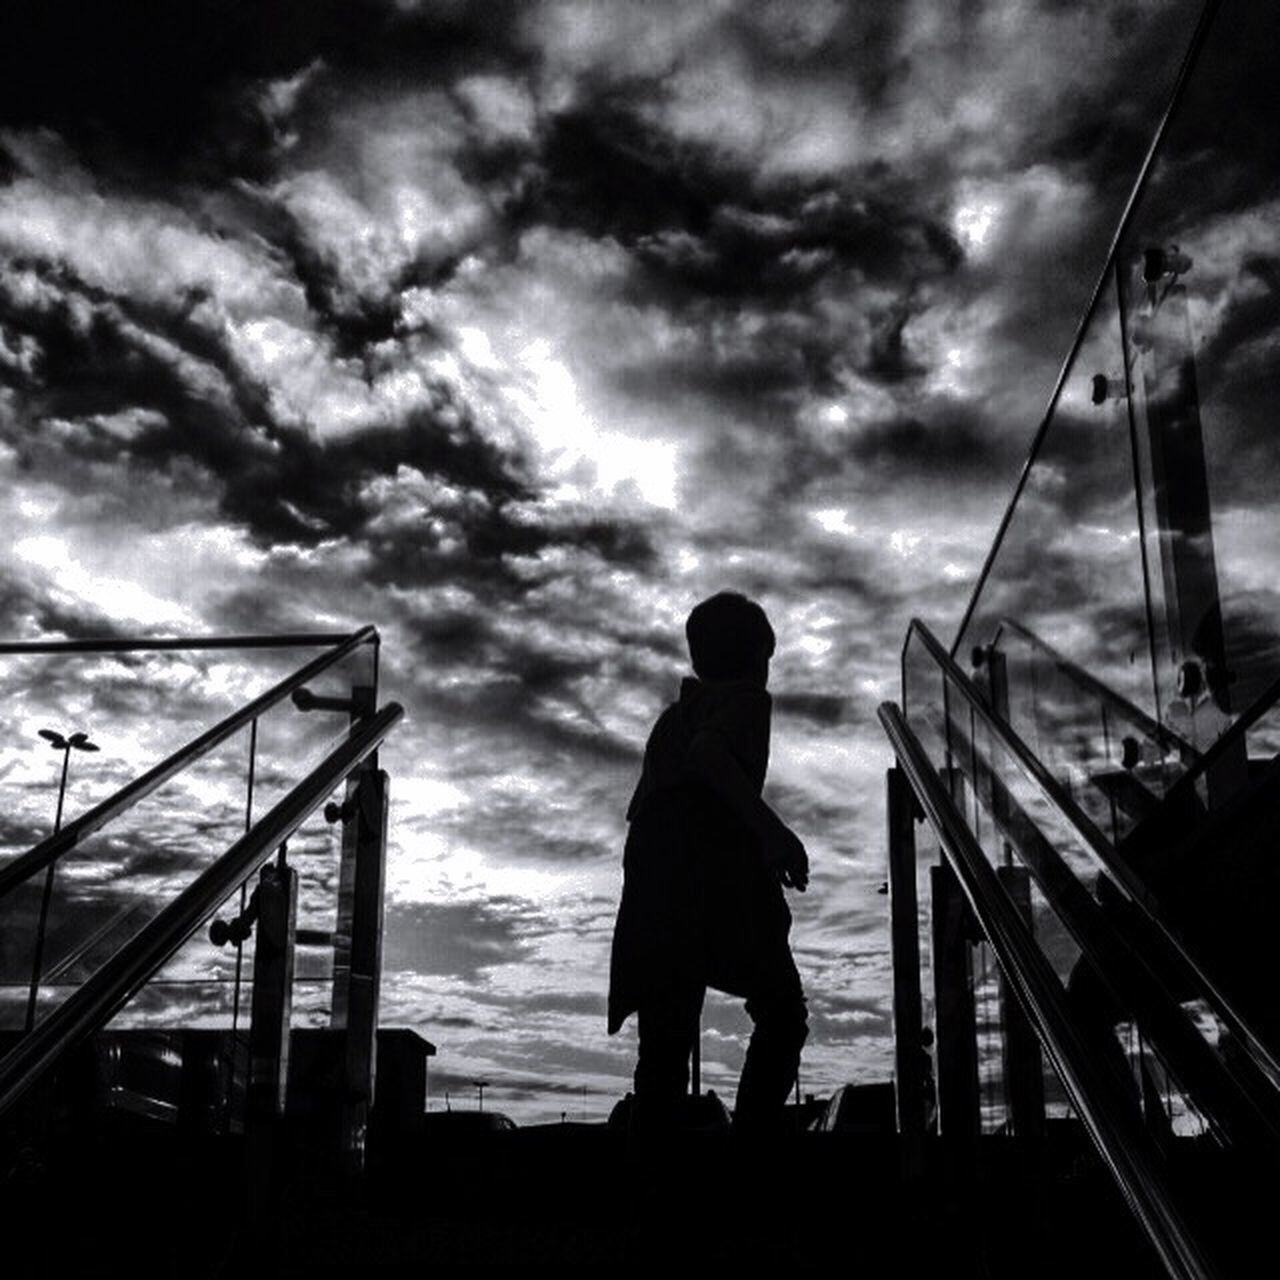 sky, cloud - sky, silhouette, childhood, full length, real people, one person, outdoors, boys, standing, low angle view, built structure, lifestyles, day, nature, architecture, people